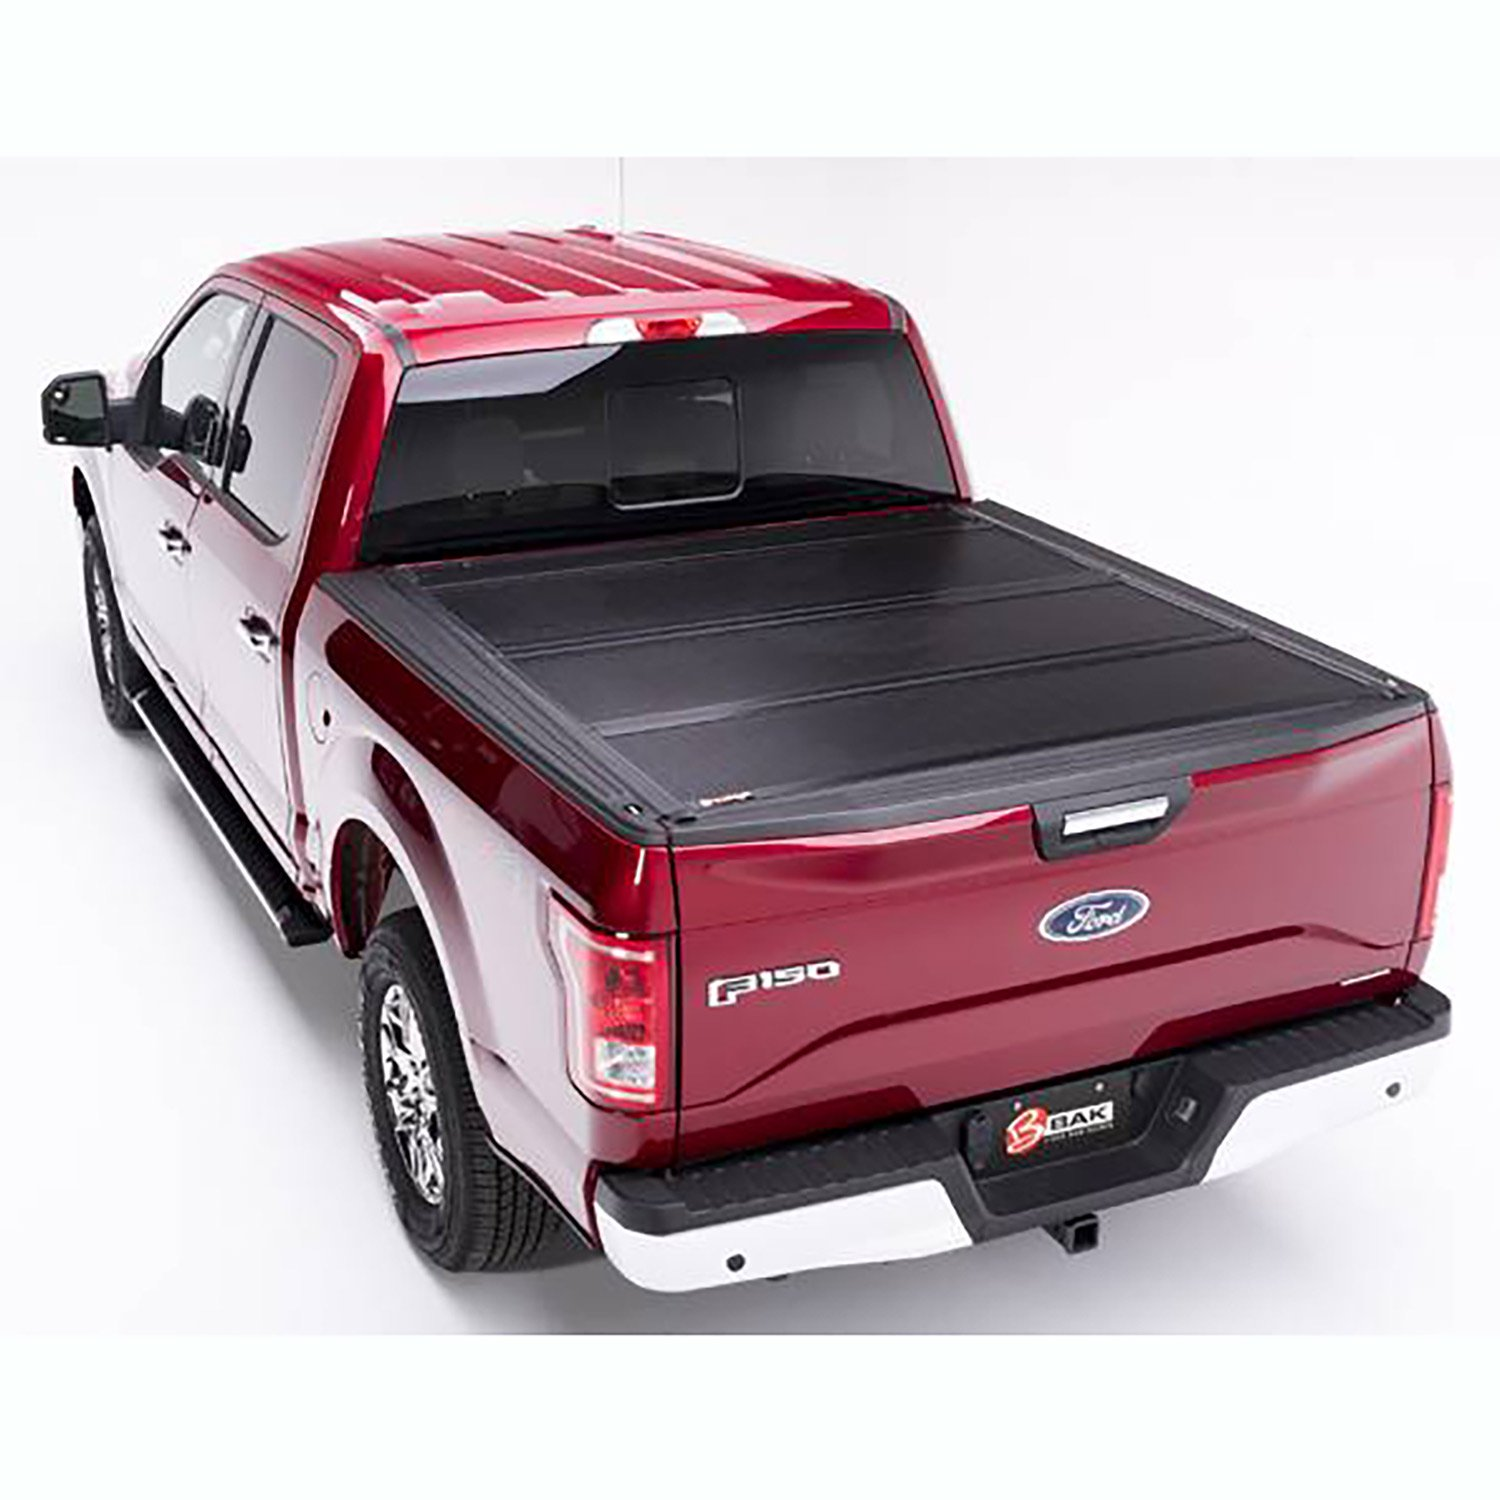 Bak Industries Bak Flip F1 Hard Roll Up Tonneau Truck Bed Cover for Ford F 150